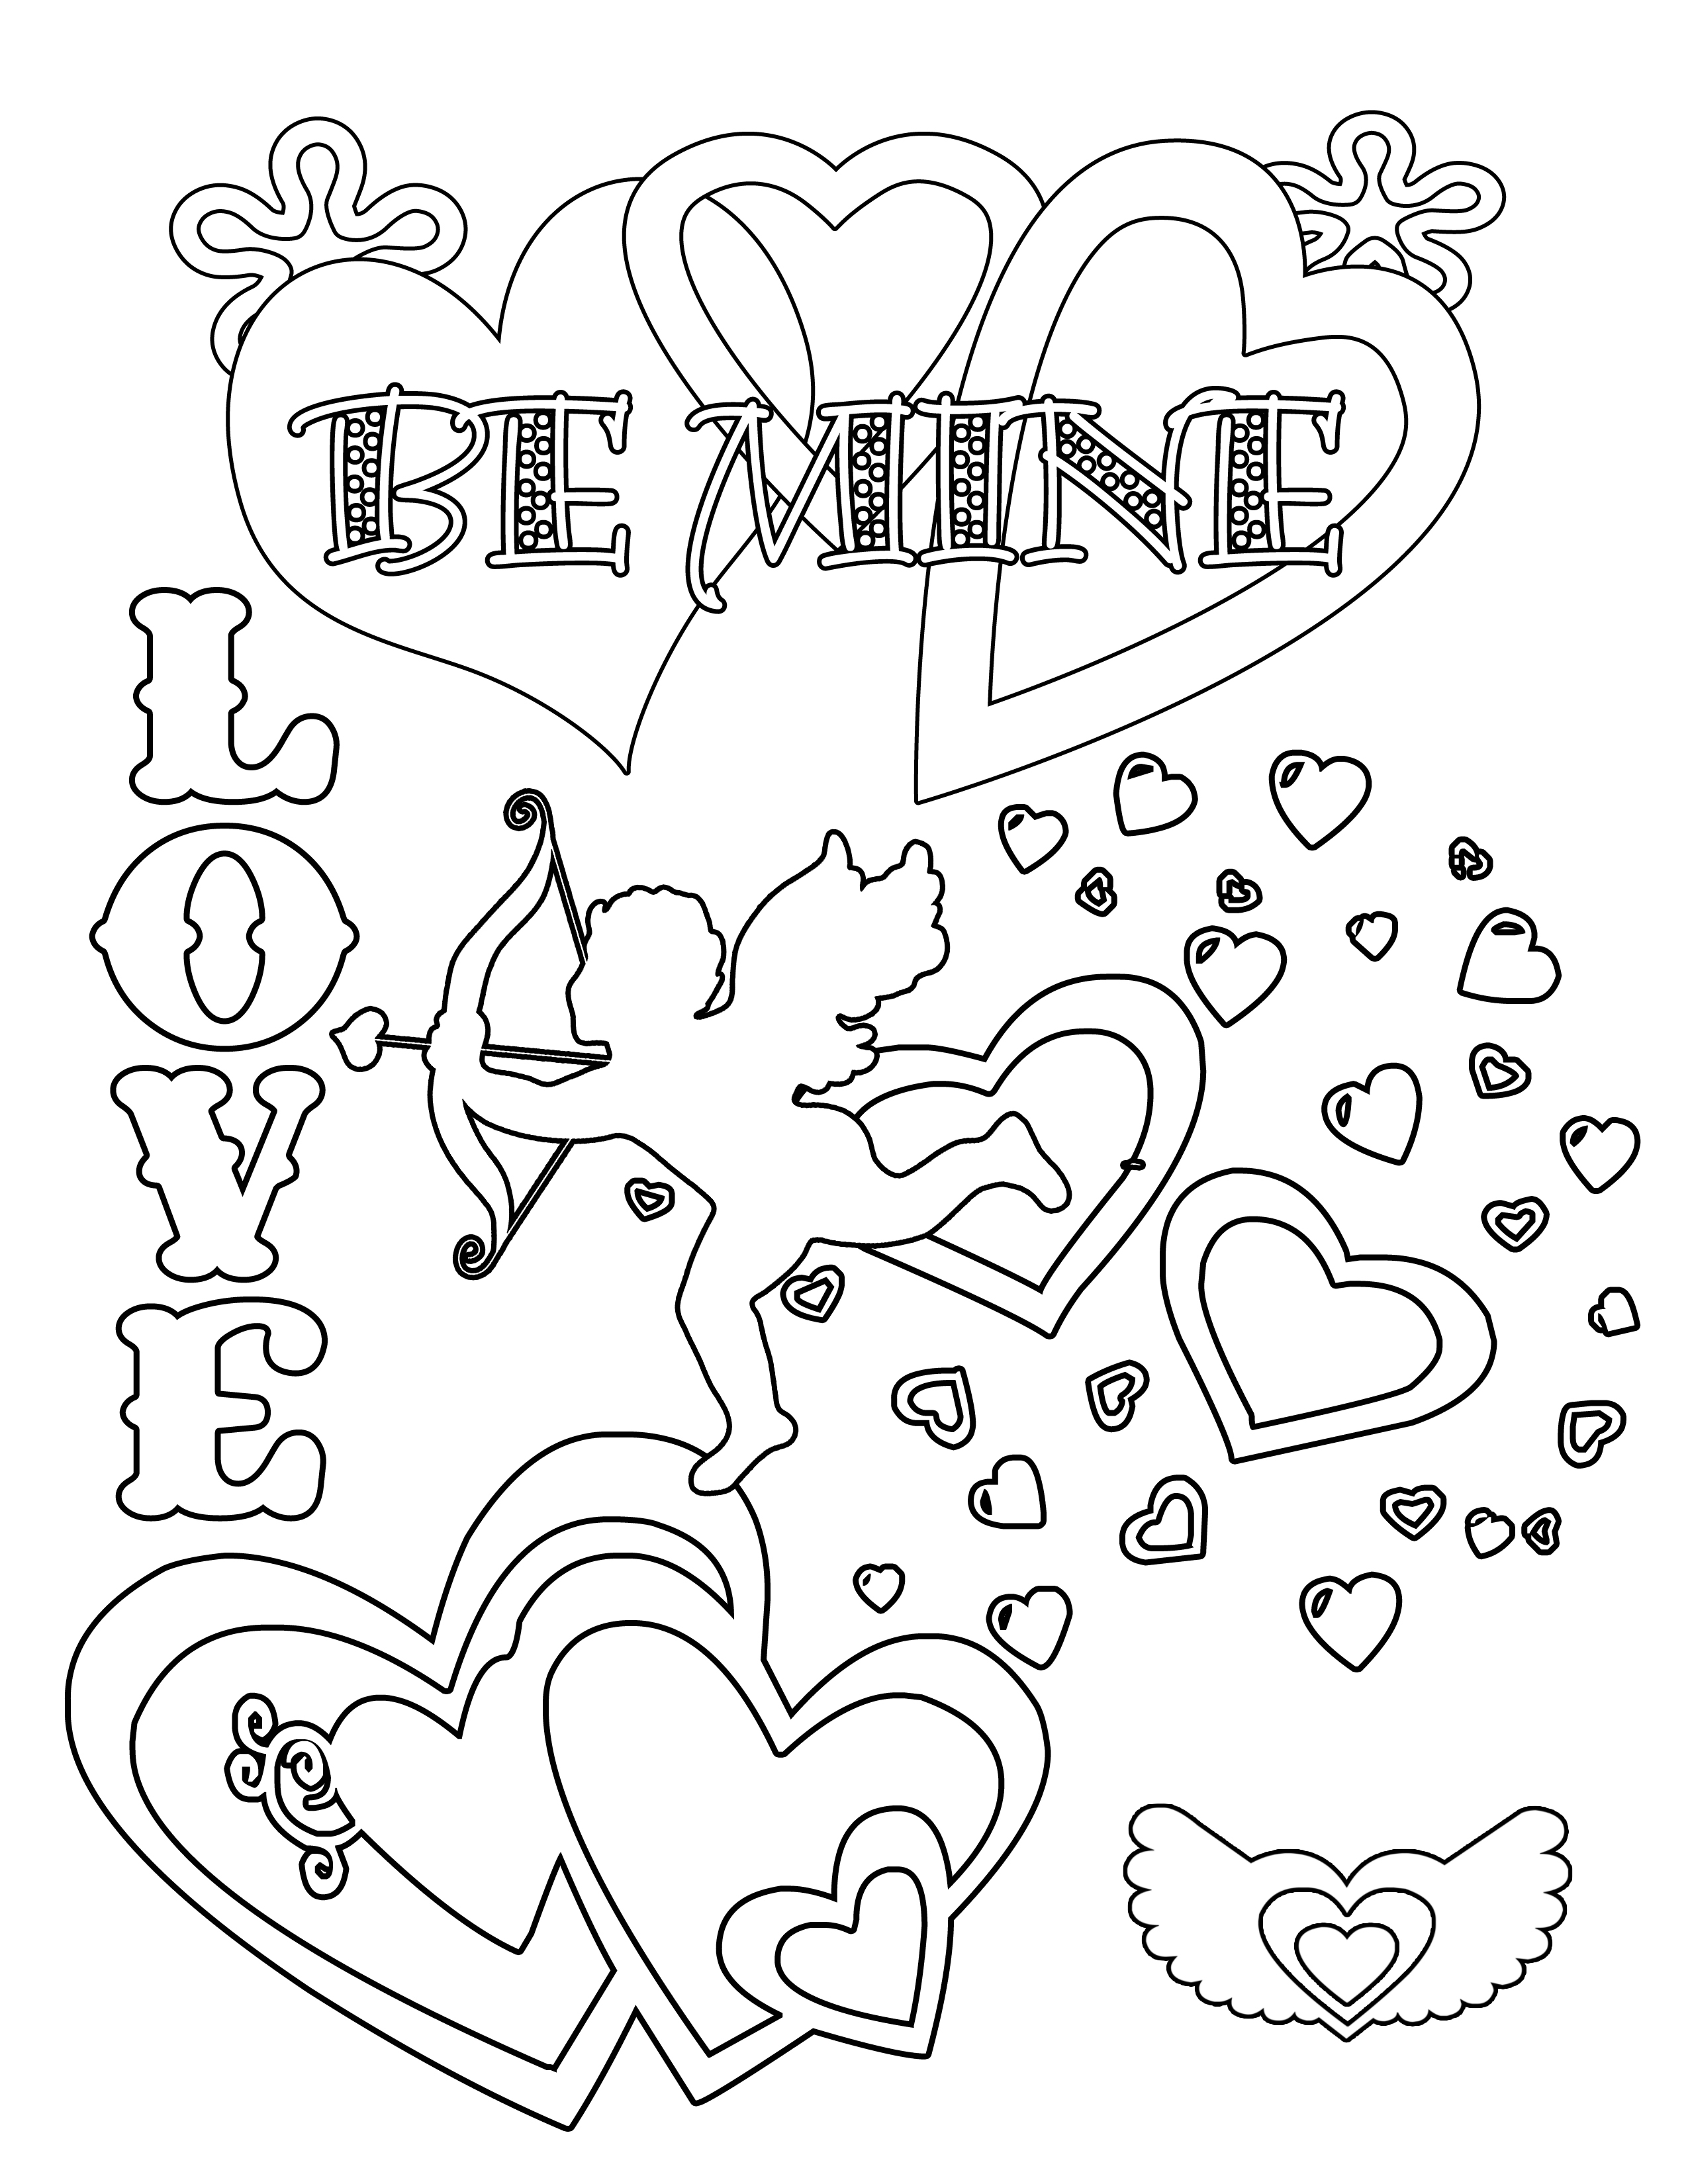 valentines coloring pages printable valentine39s coloring pages crazy little projects coloring valentines printable pages